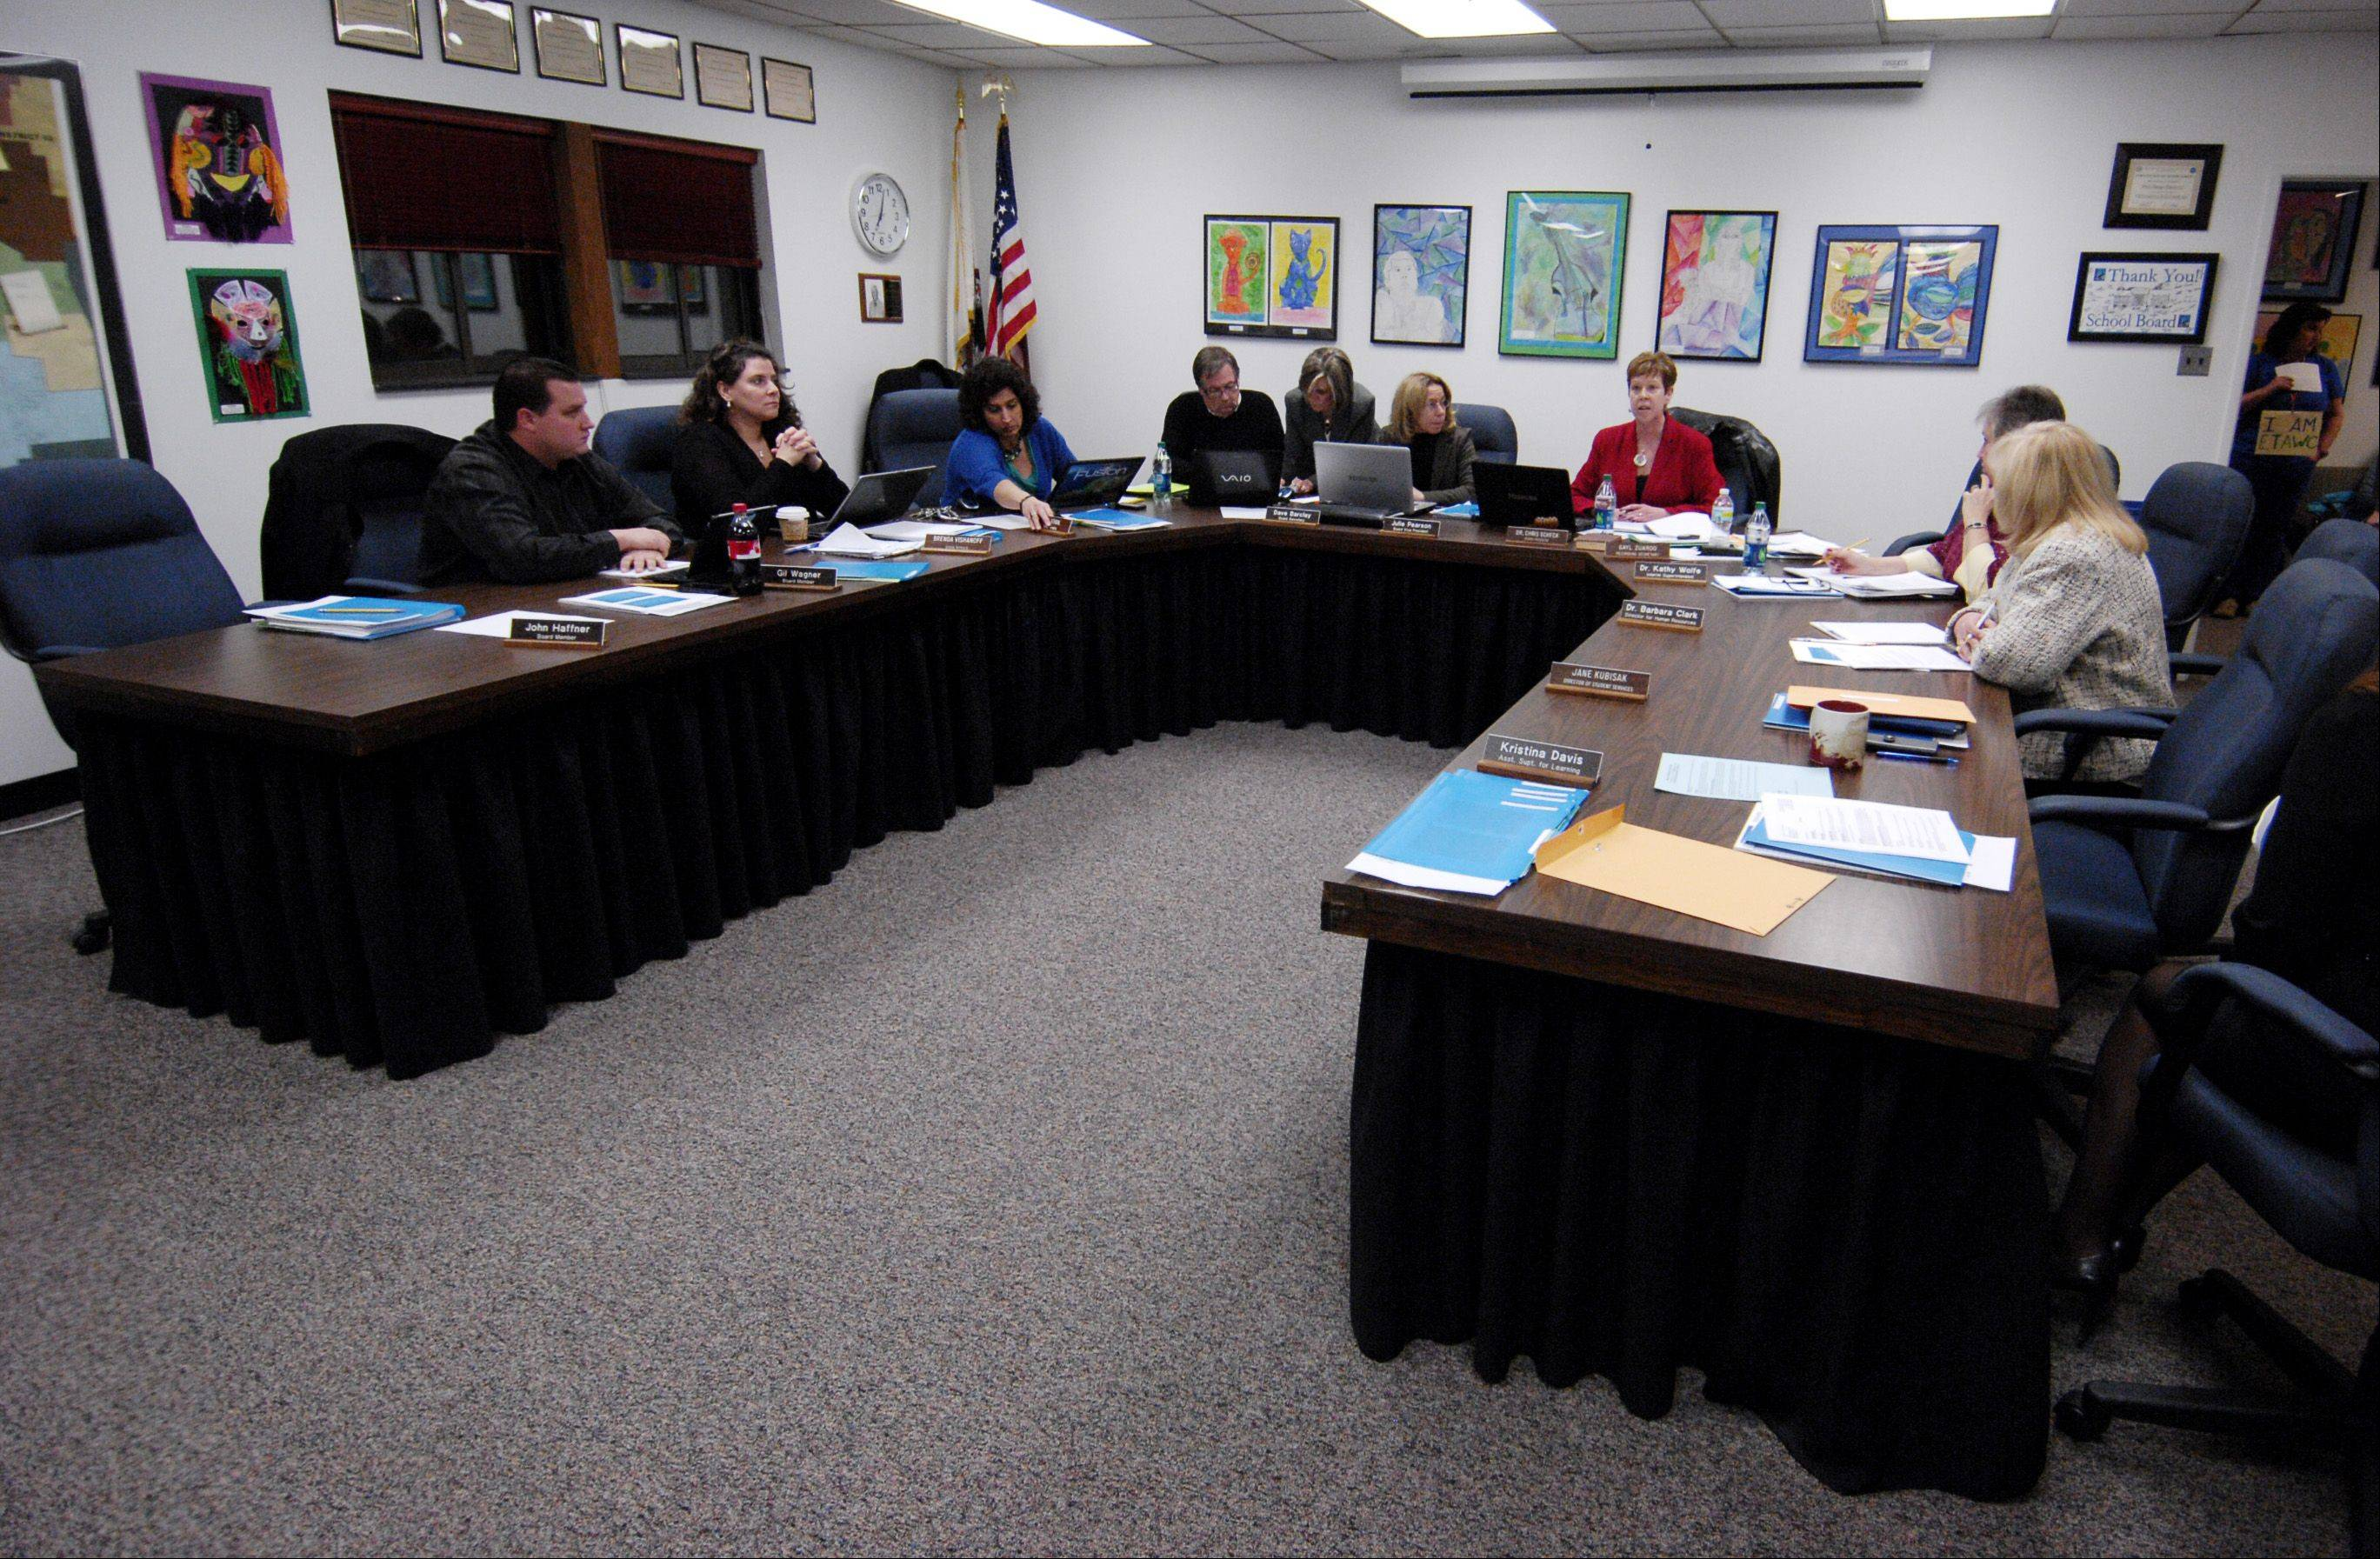 West Chicago District 33 school board announced during a meeting Thursday night it intends to implement its last contract offer to the teachers union of the two sides cannot come to agreement before Feb. 21.